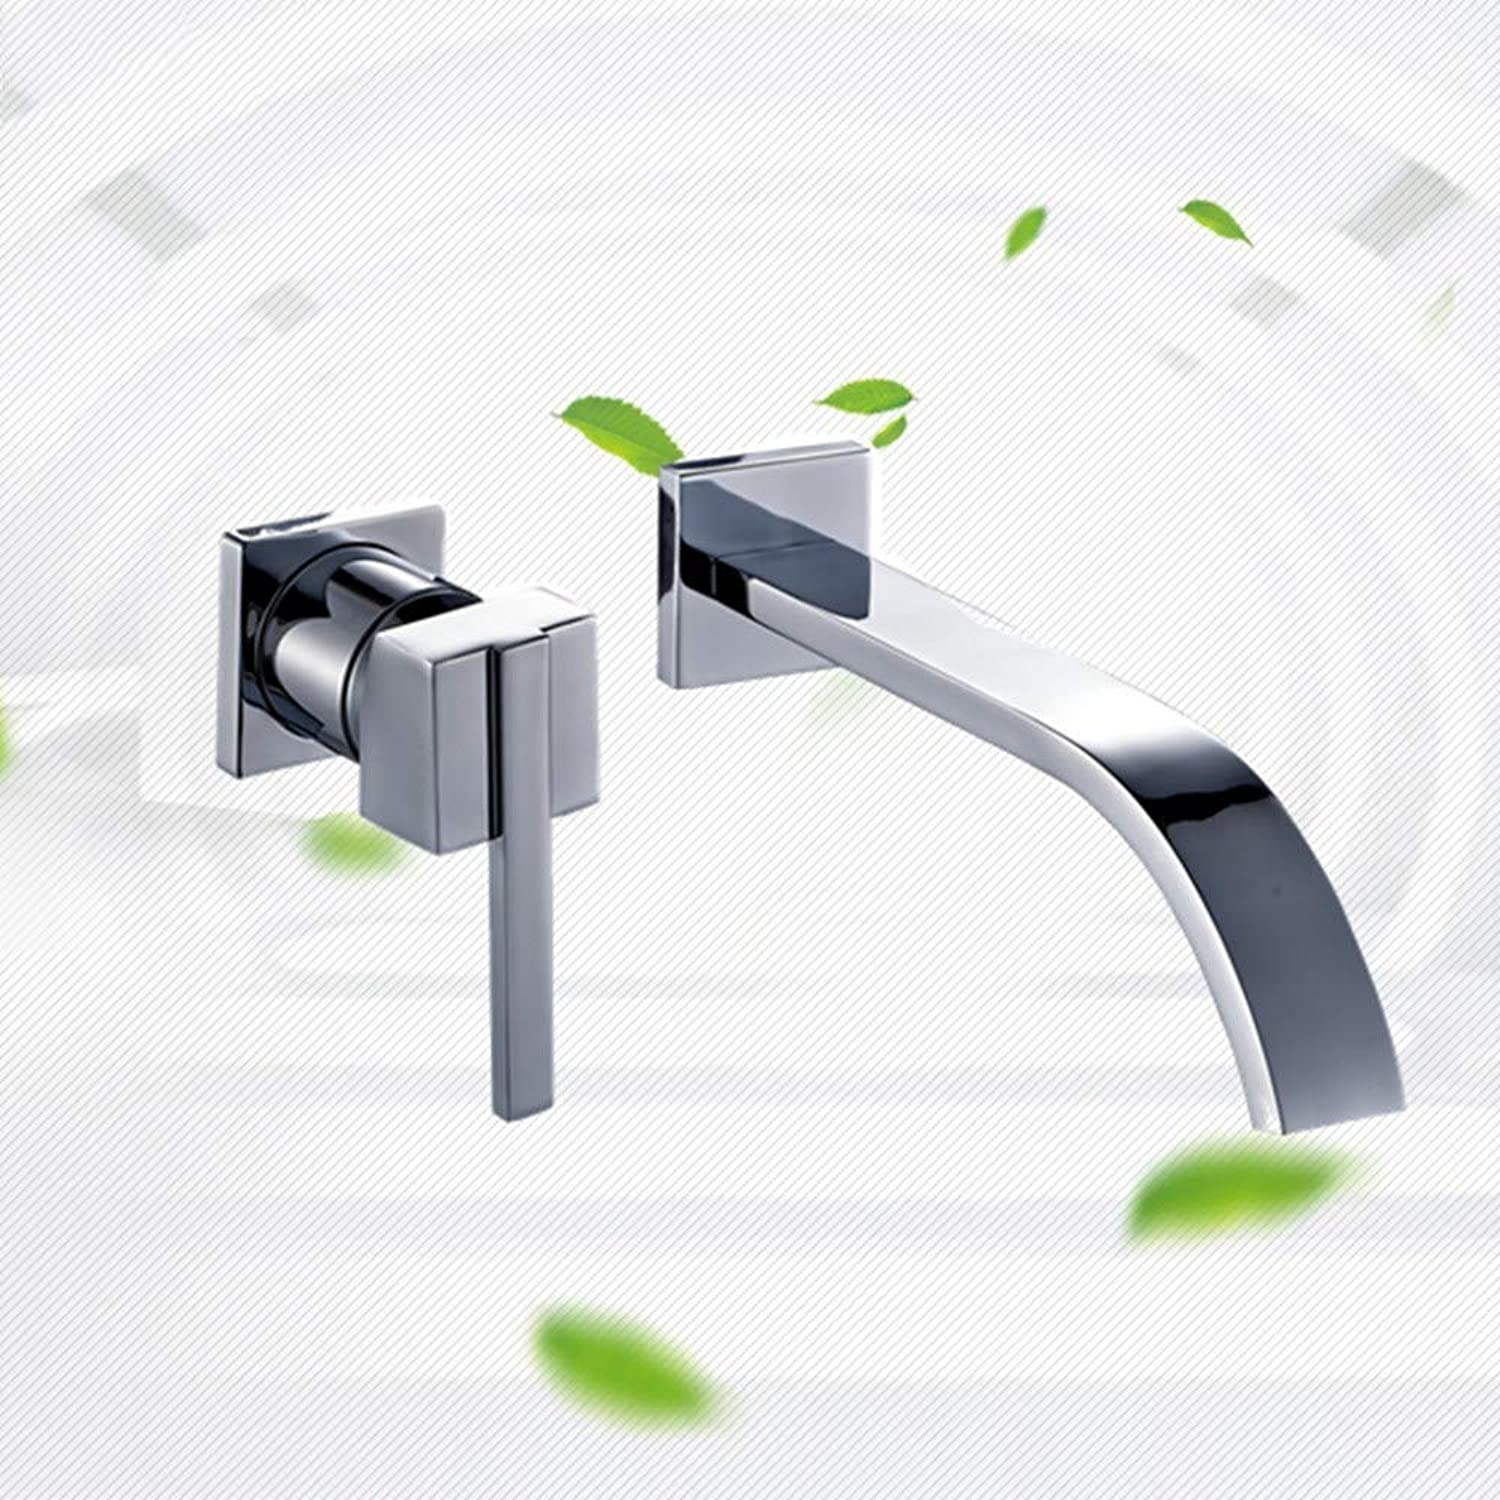 Joeyhome Wall Faucet Mixer Crane Hot and Cold Water Waterfall Bathroom Sink Faucet Chrome Finished